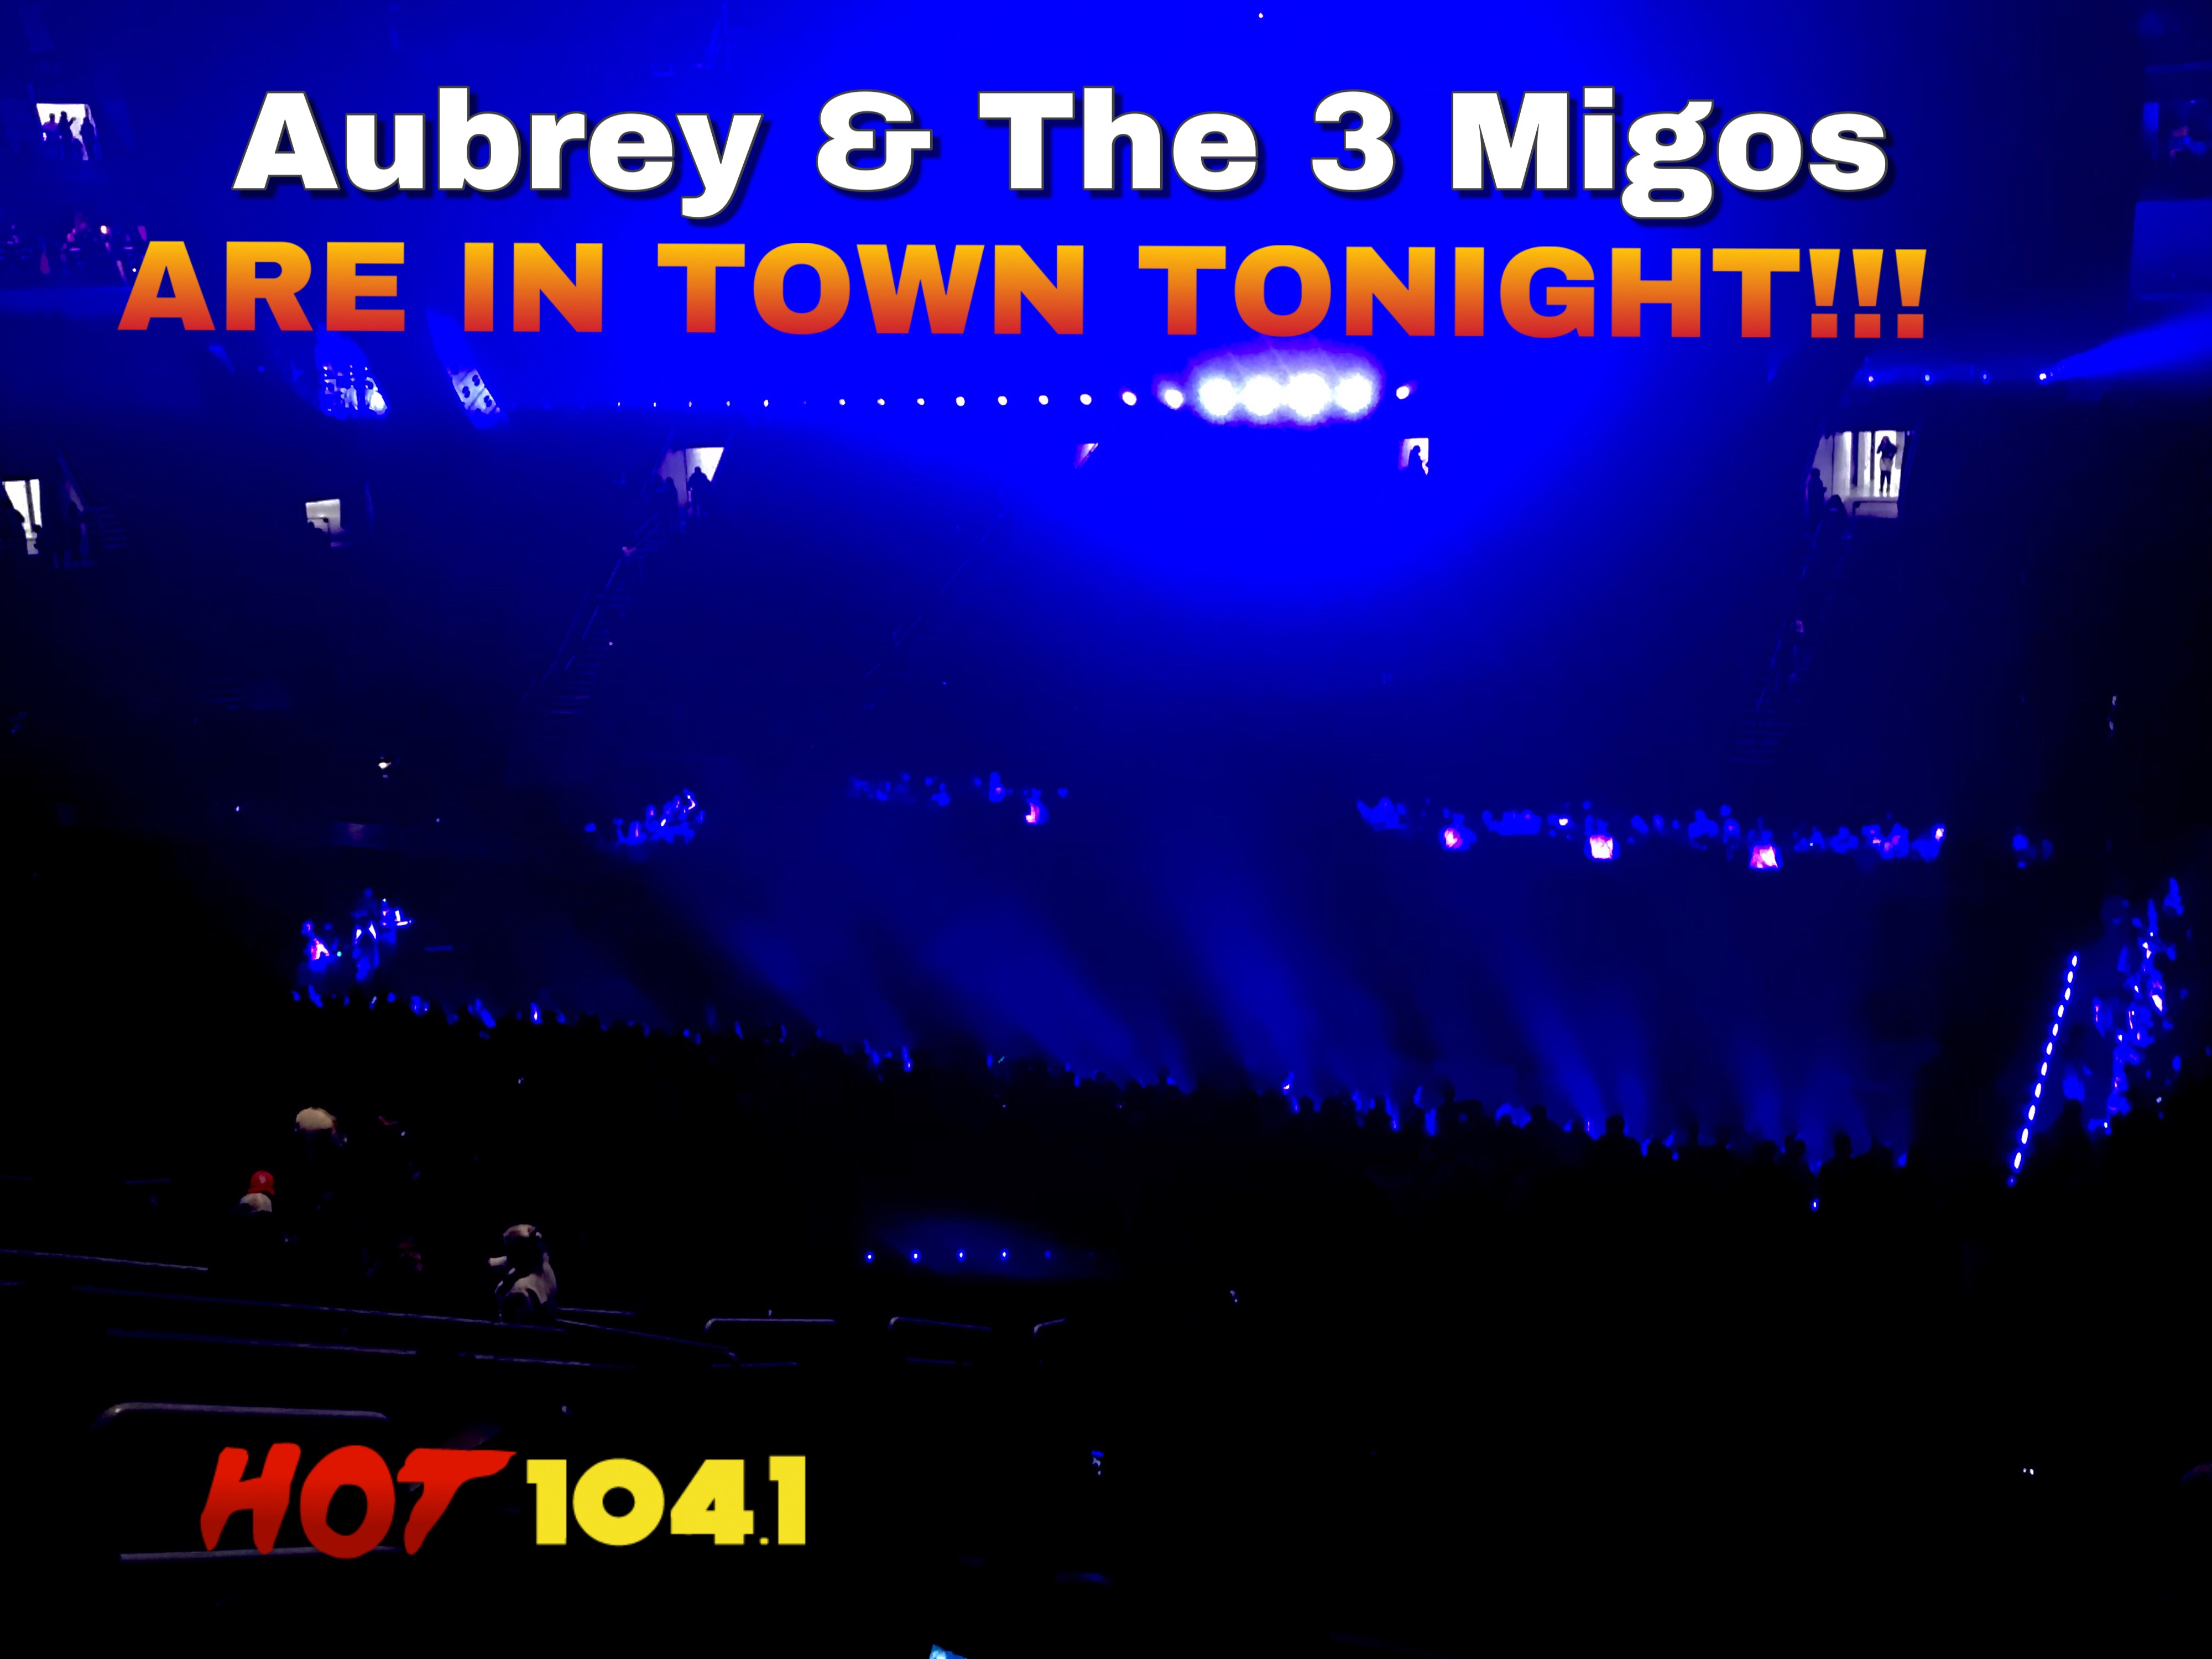 Aubrey and 3 Migos Tour